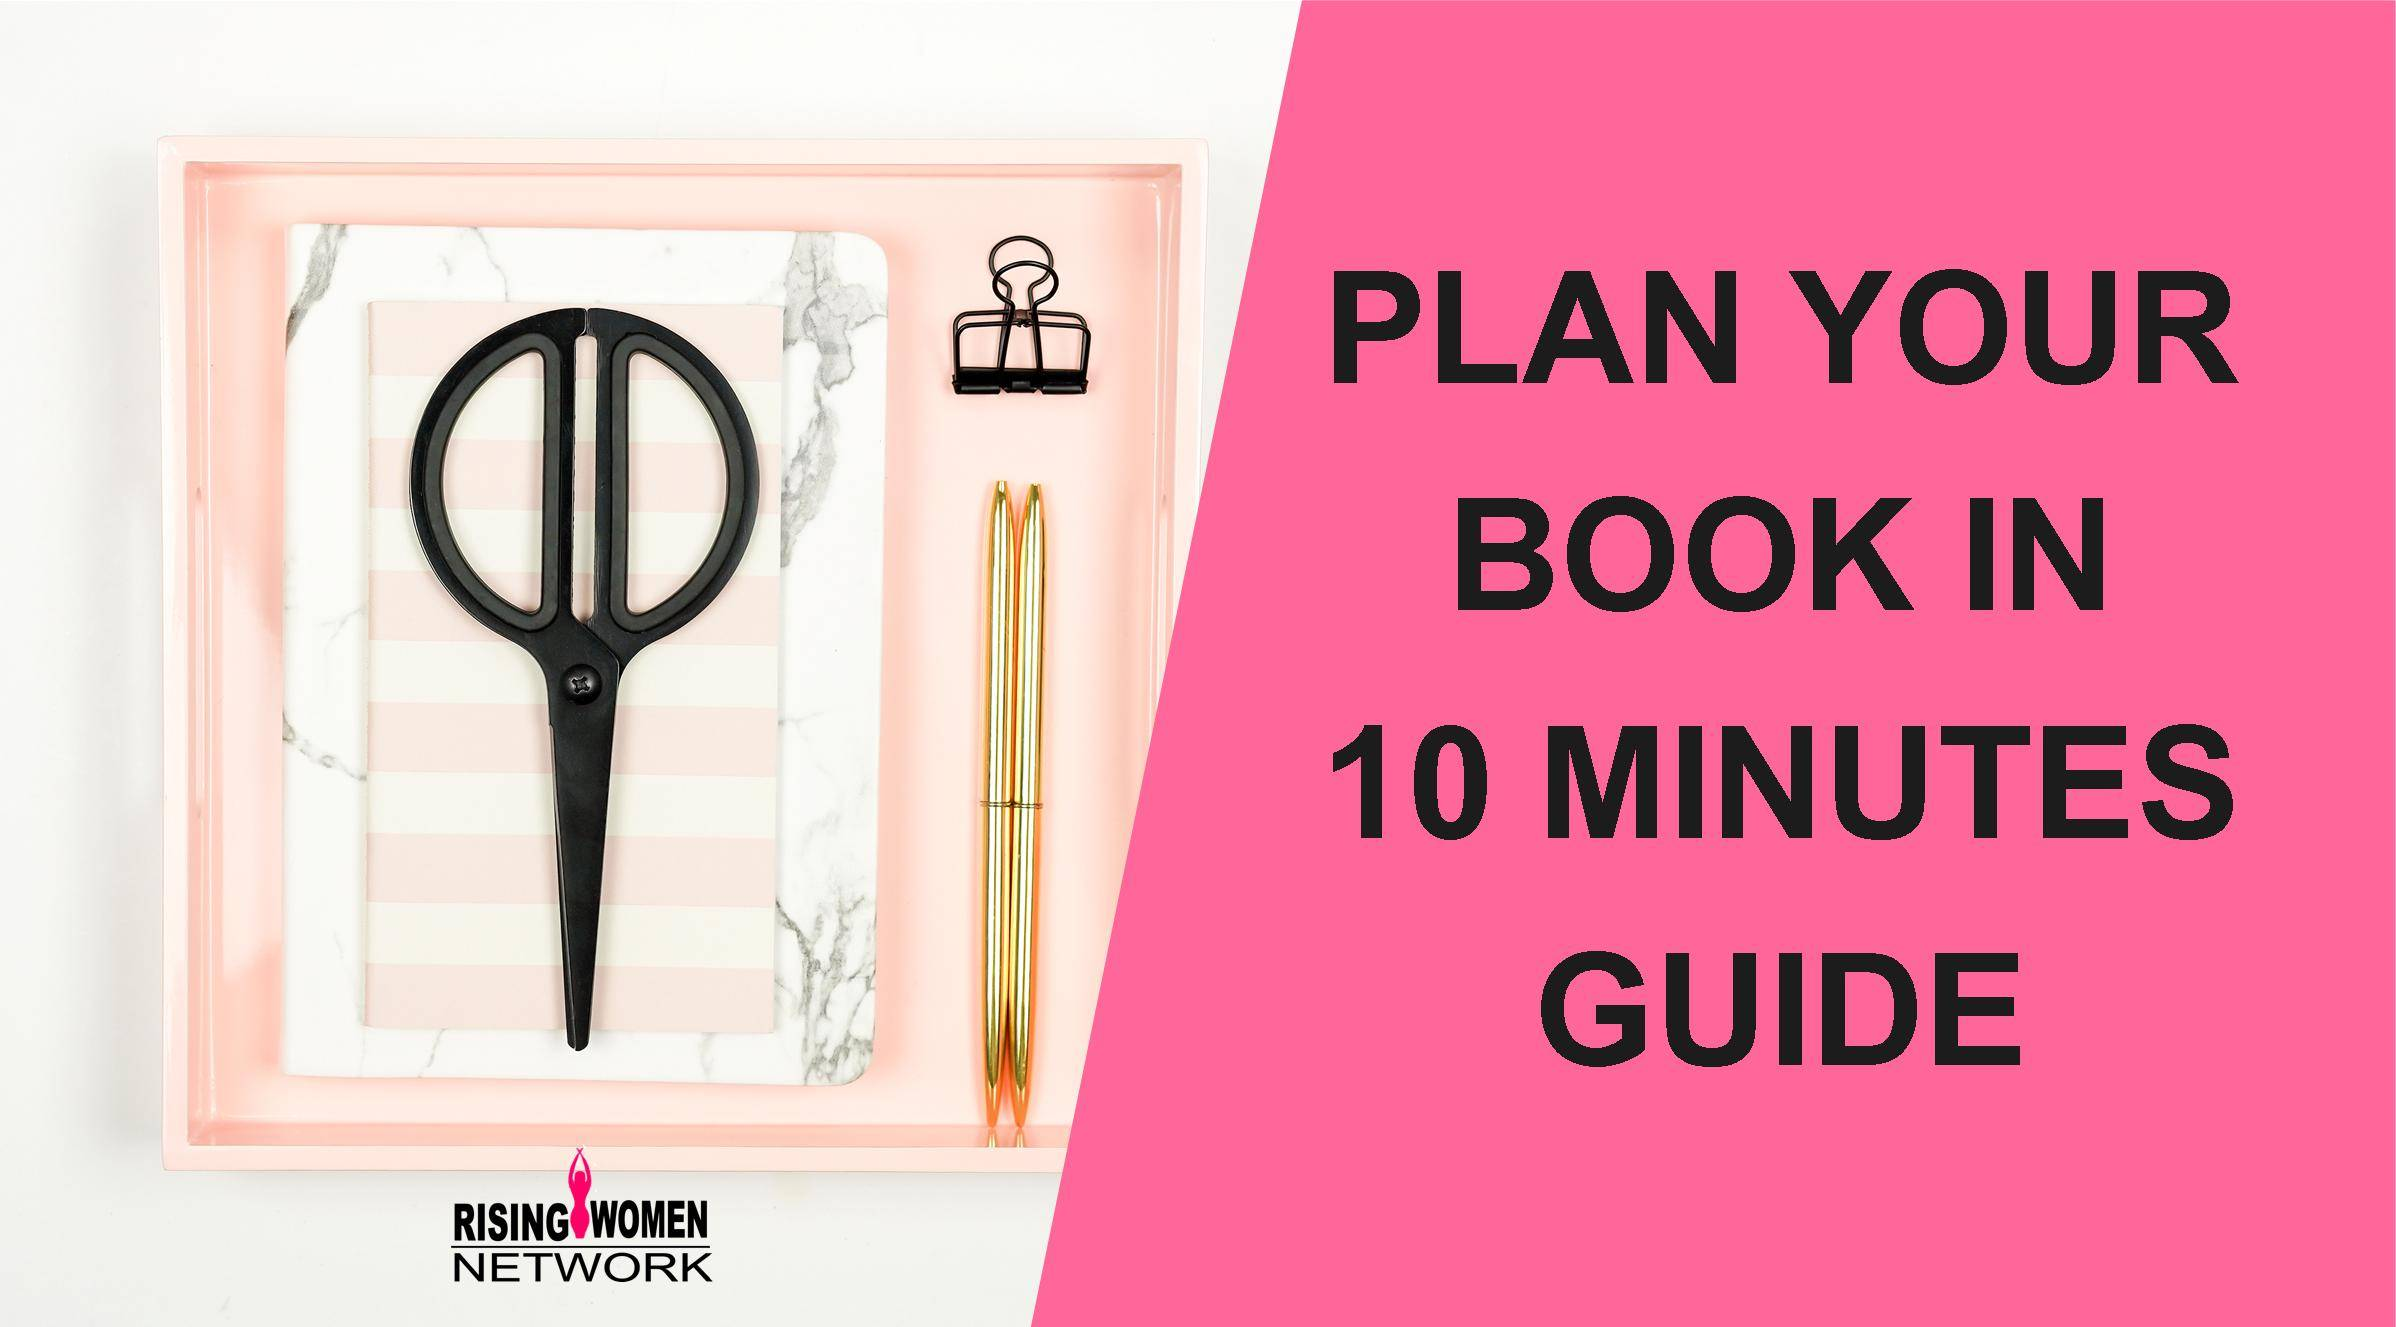 By planning out your book before you start can save you time, money, and prevent you from hitting a wall after writing your first 3 pages. By taking a few minutes to read this, it will save you hours of frustrations from poor planning.